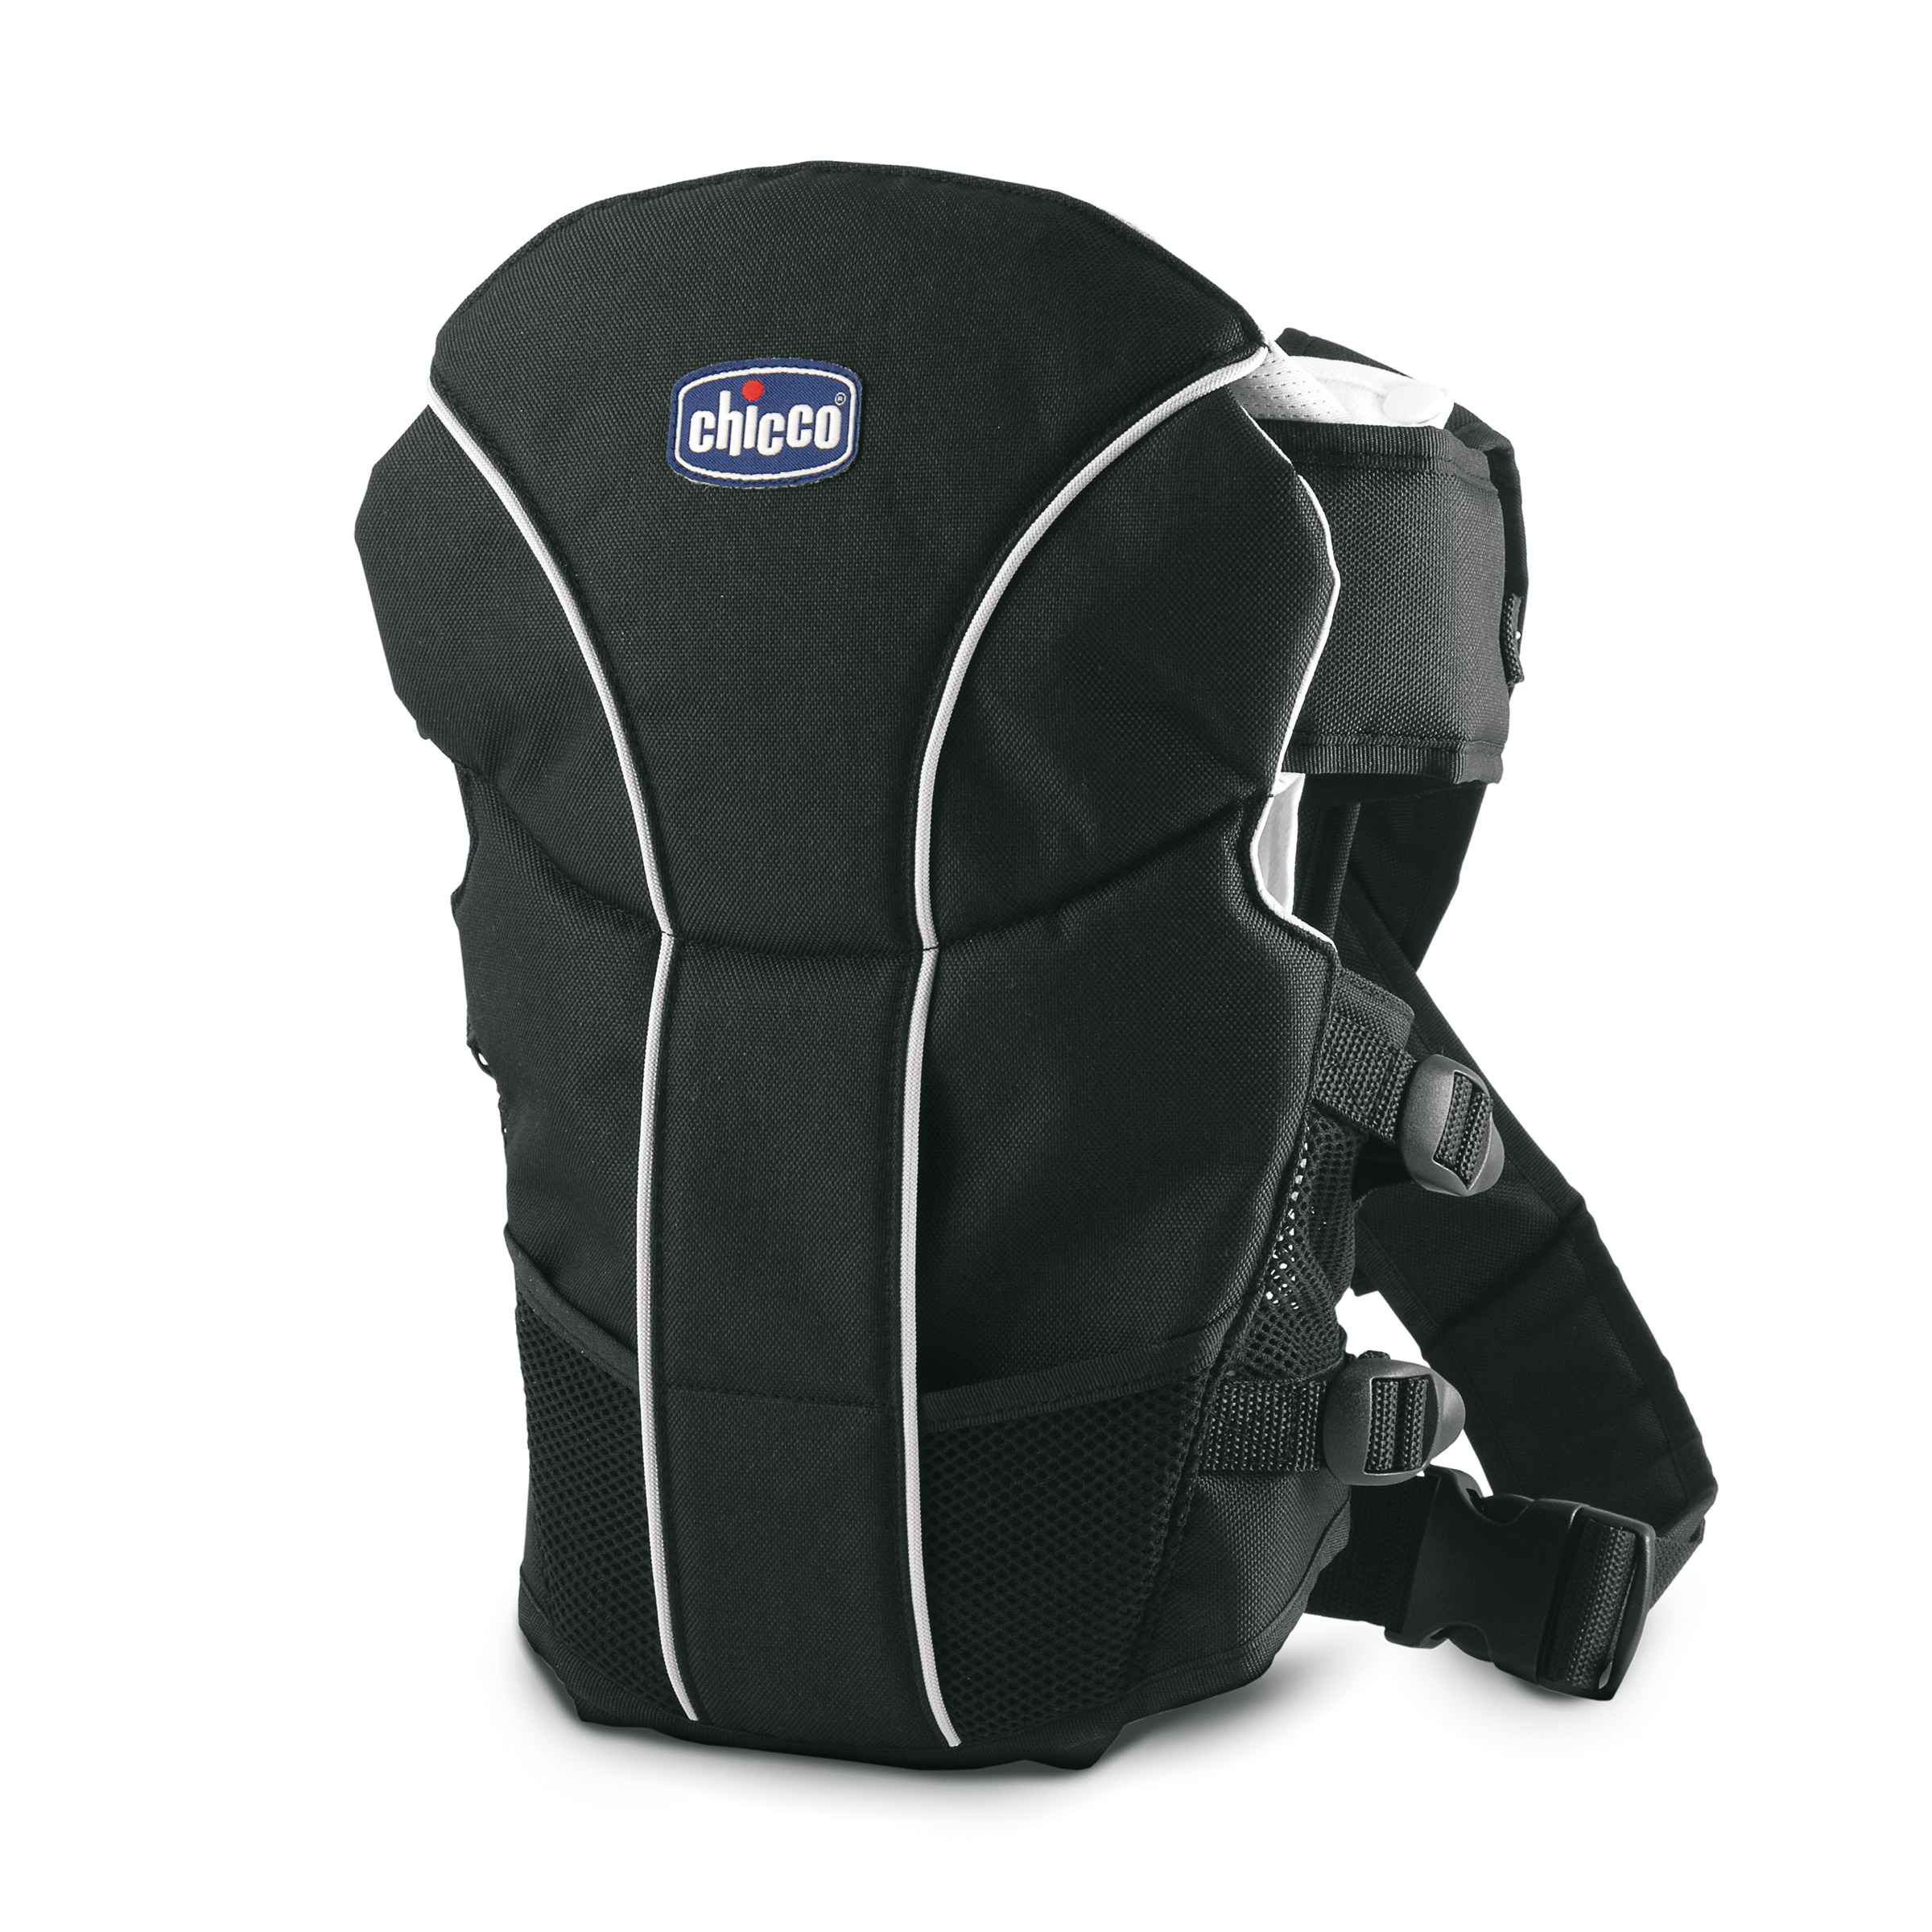 Chicco UltraSoft Infant Carrier, Black